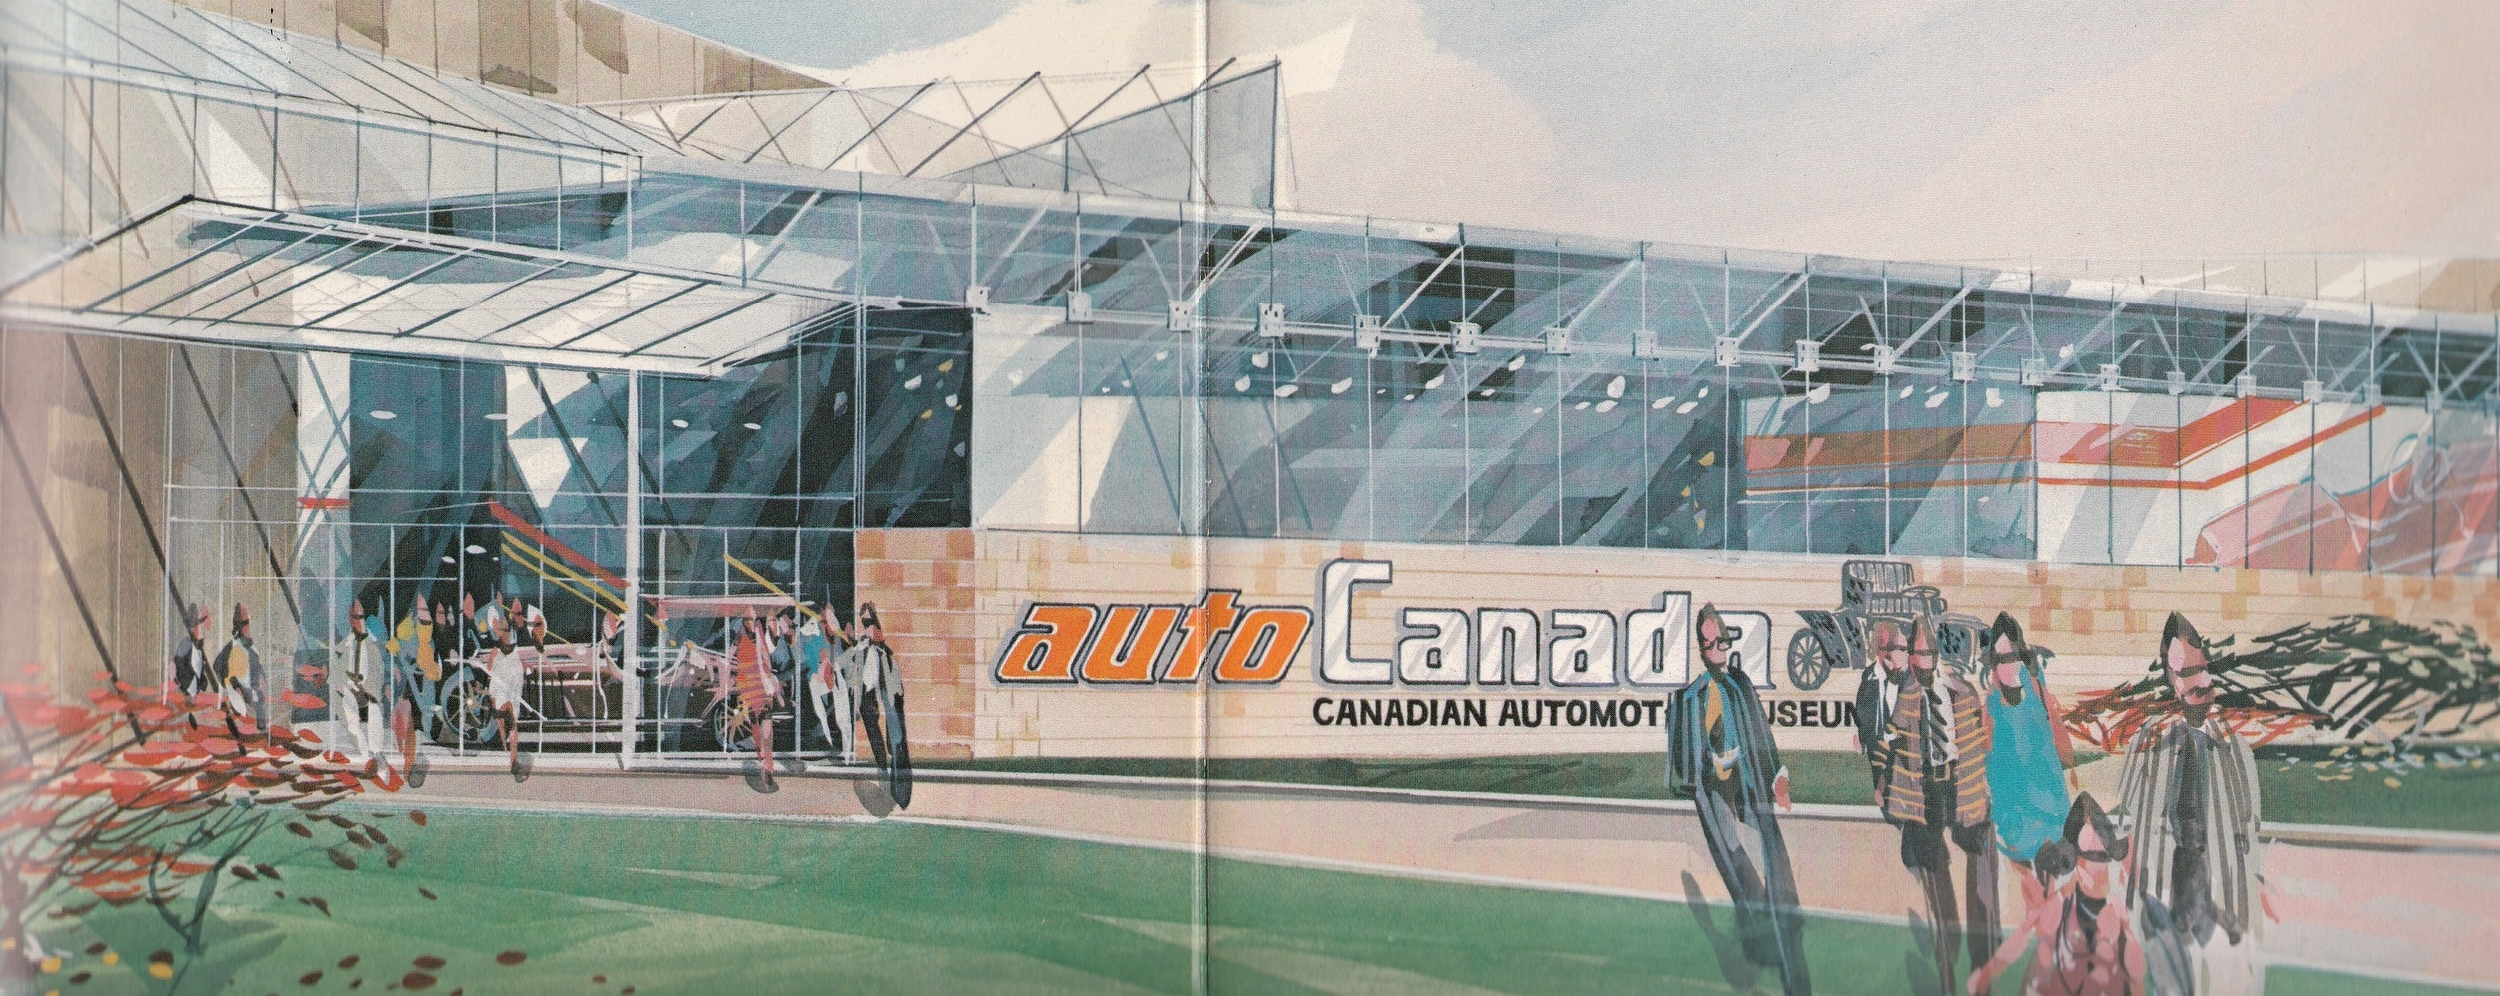 A new Canadian Automotive Museum facility, called autoCanada, was planned to open south of Bloor St. in south Oshawa.